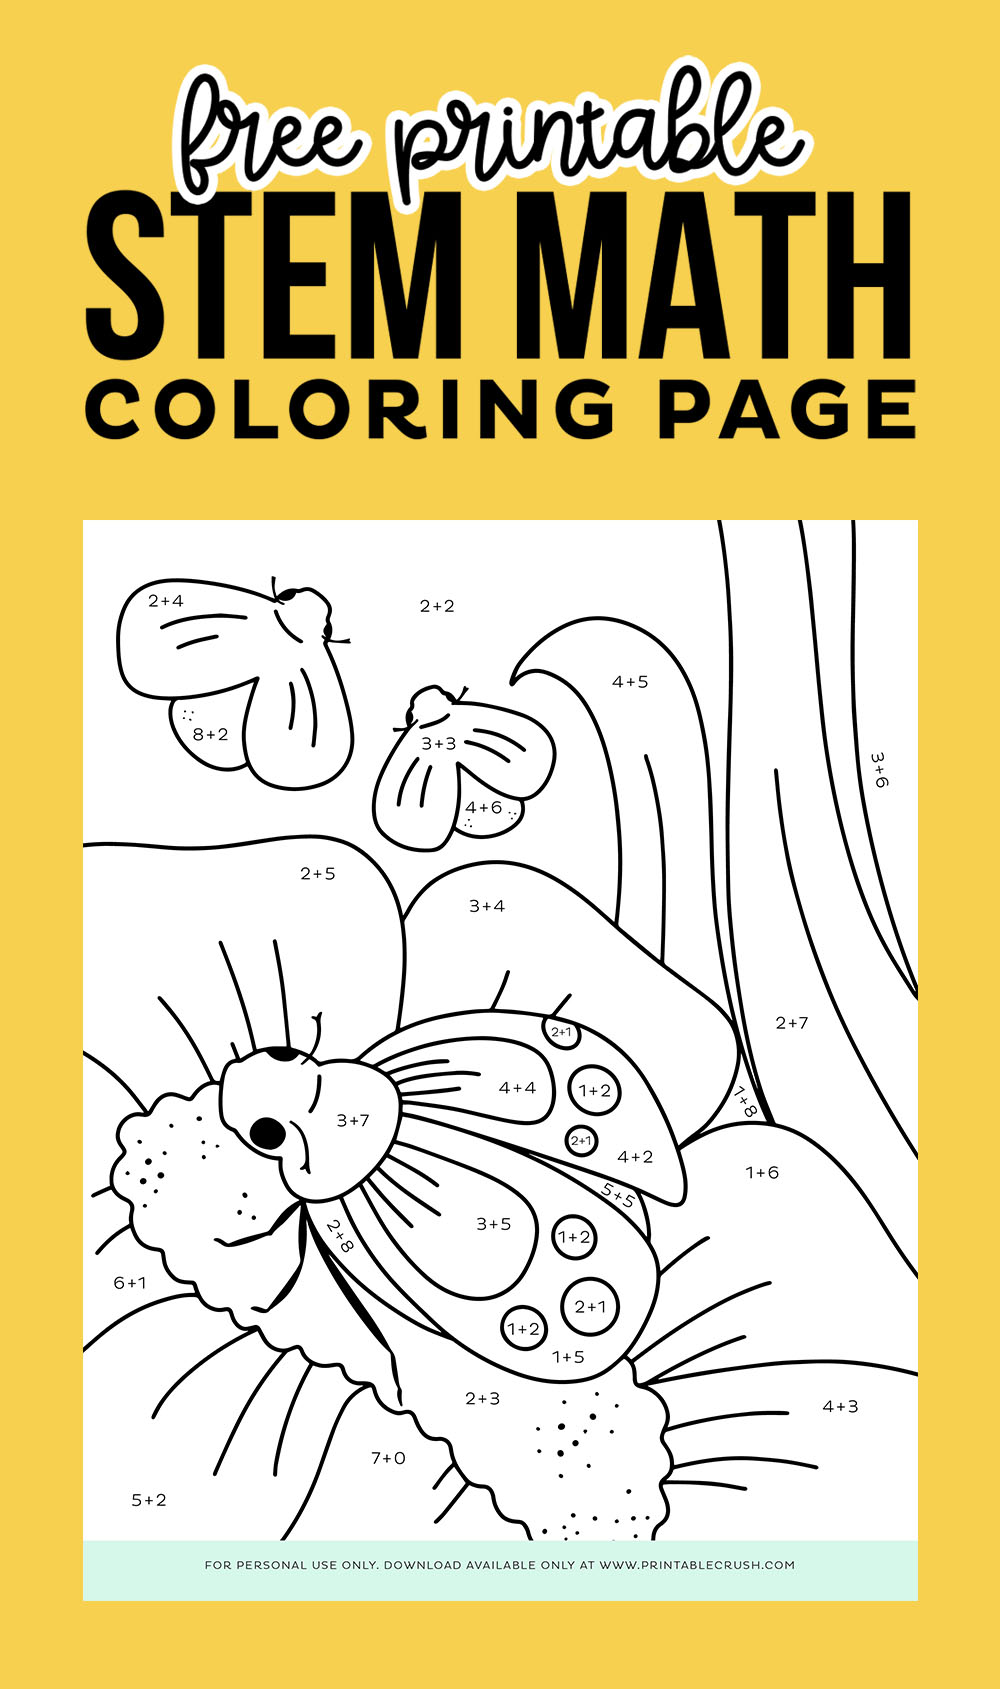 Free Printable STEM Math Coloring Page